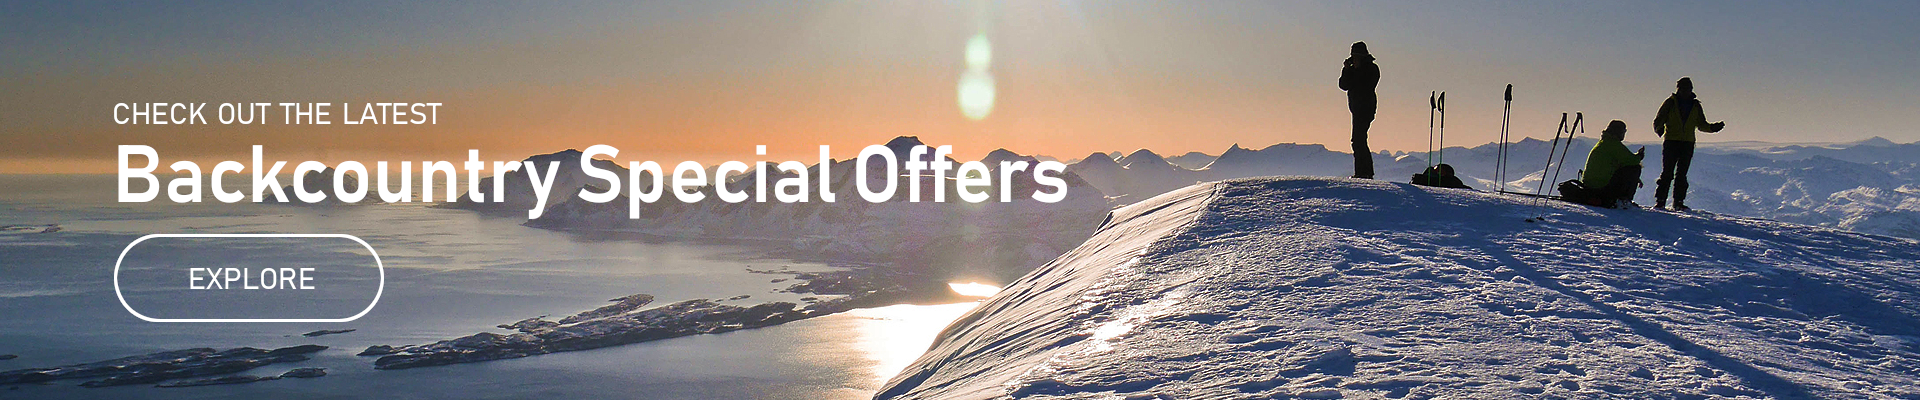 Backcountry and Ski Touring Special Offers